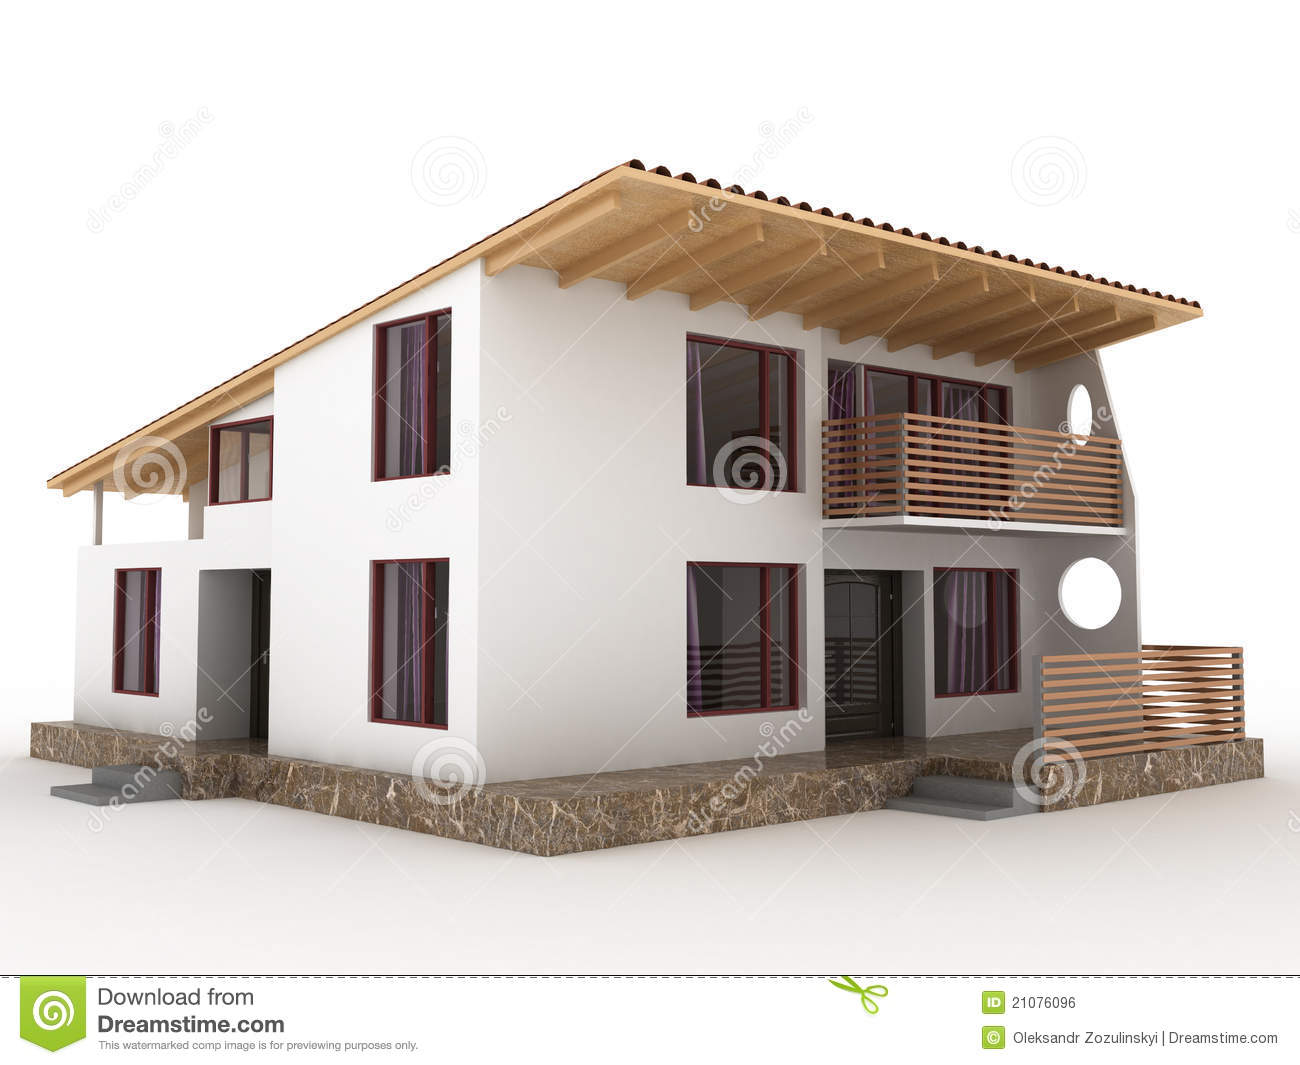 The house with sloping roof №2